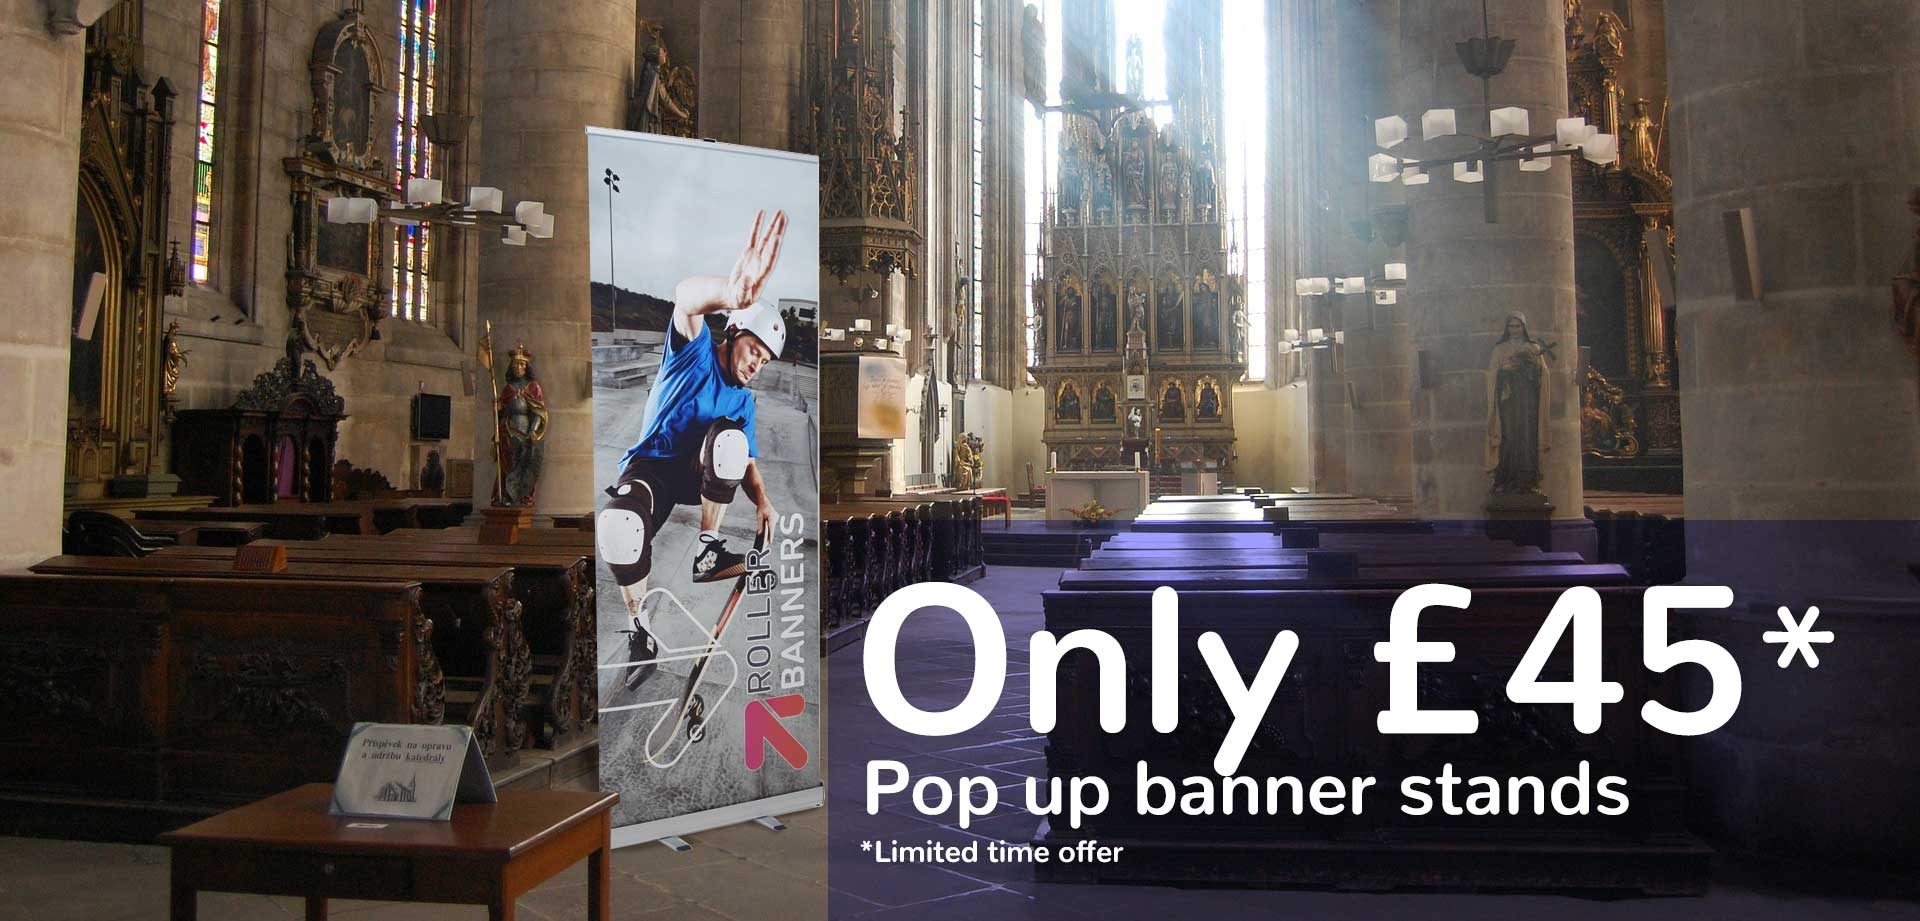 church roller banner roller banners for churches roller banners    Image of church roller banner